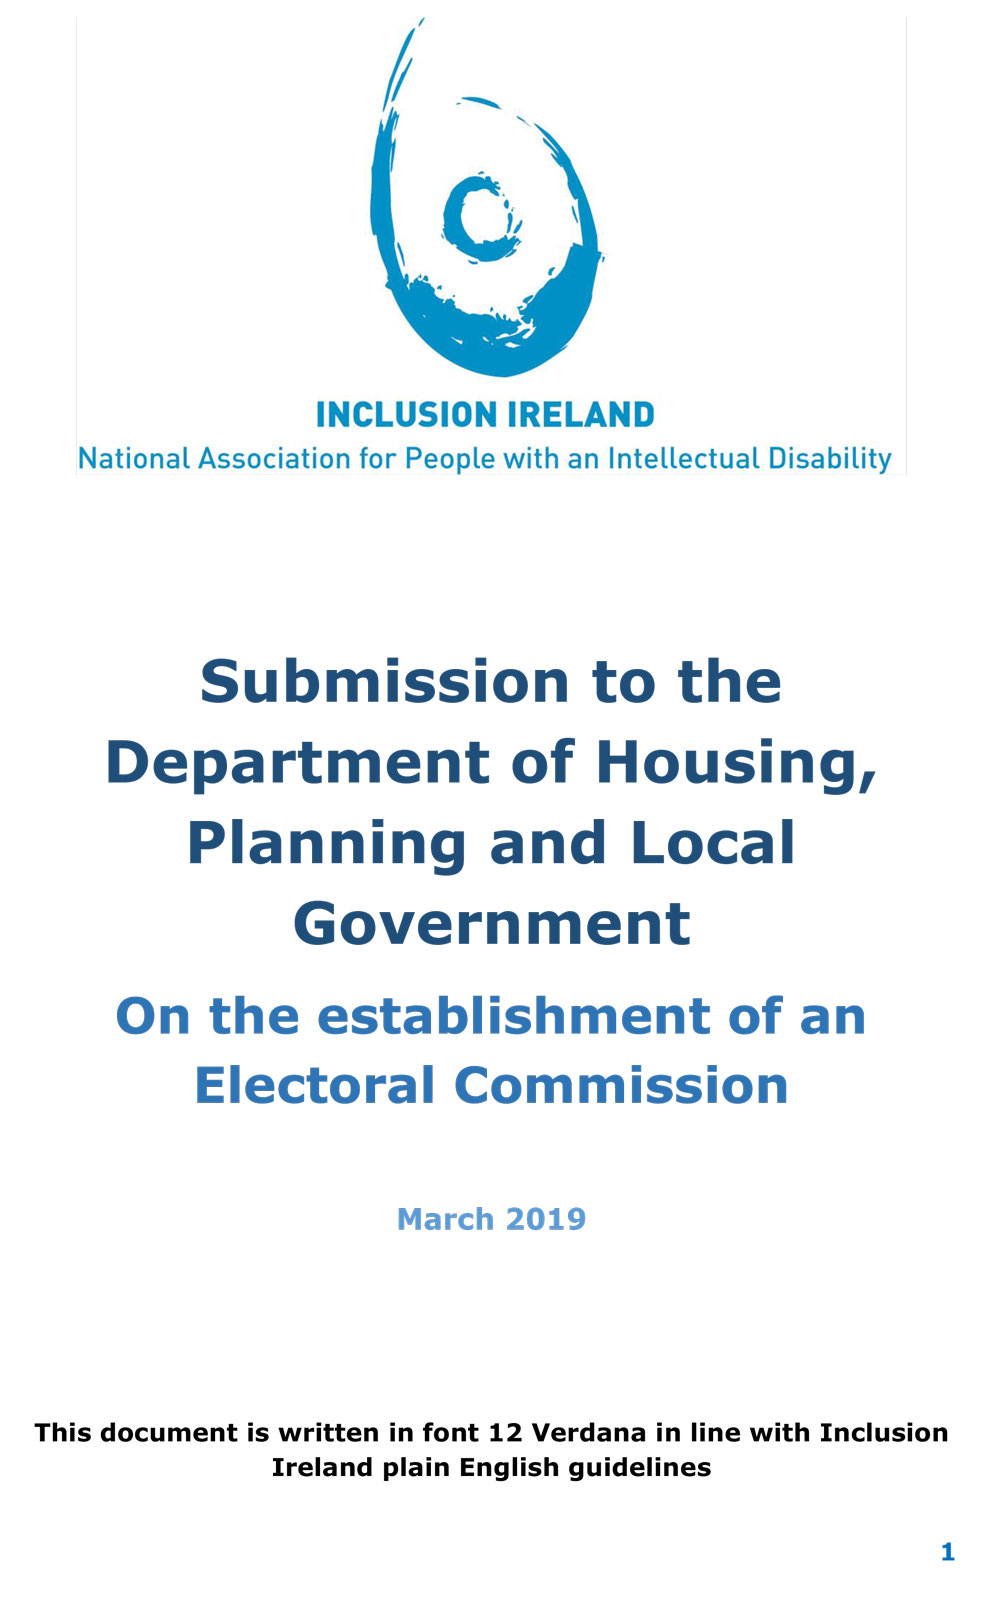 Submission to the Department of Housing, Planning and Local Government On the establishment of an Electoral Commission 2019